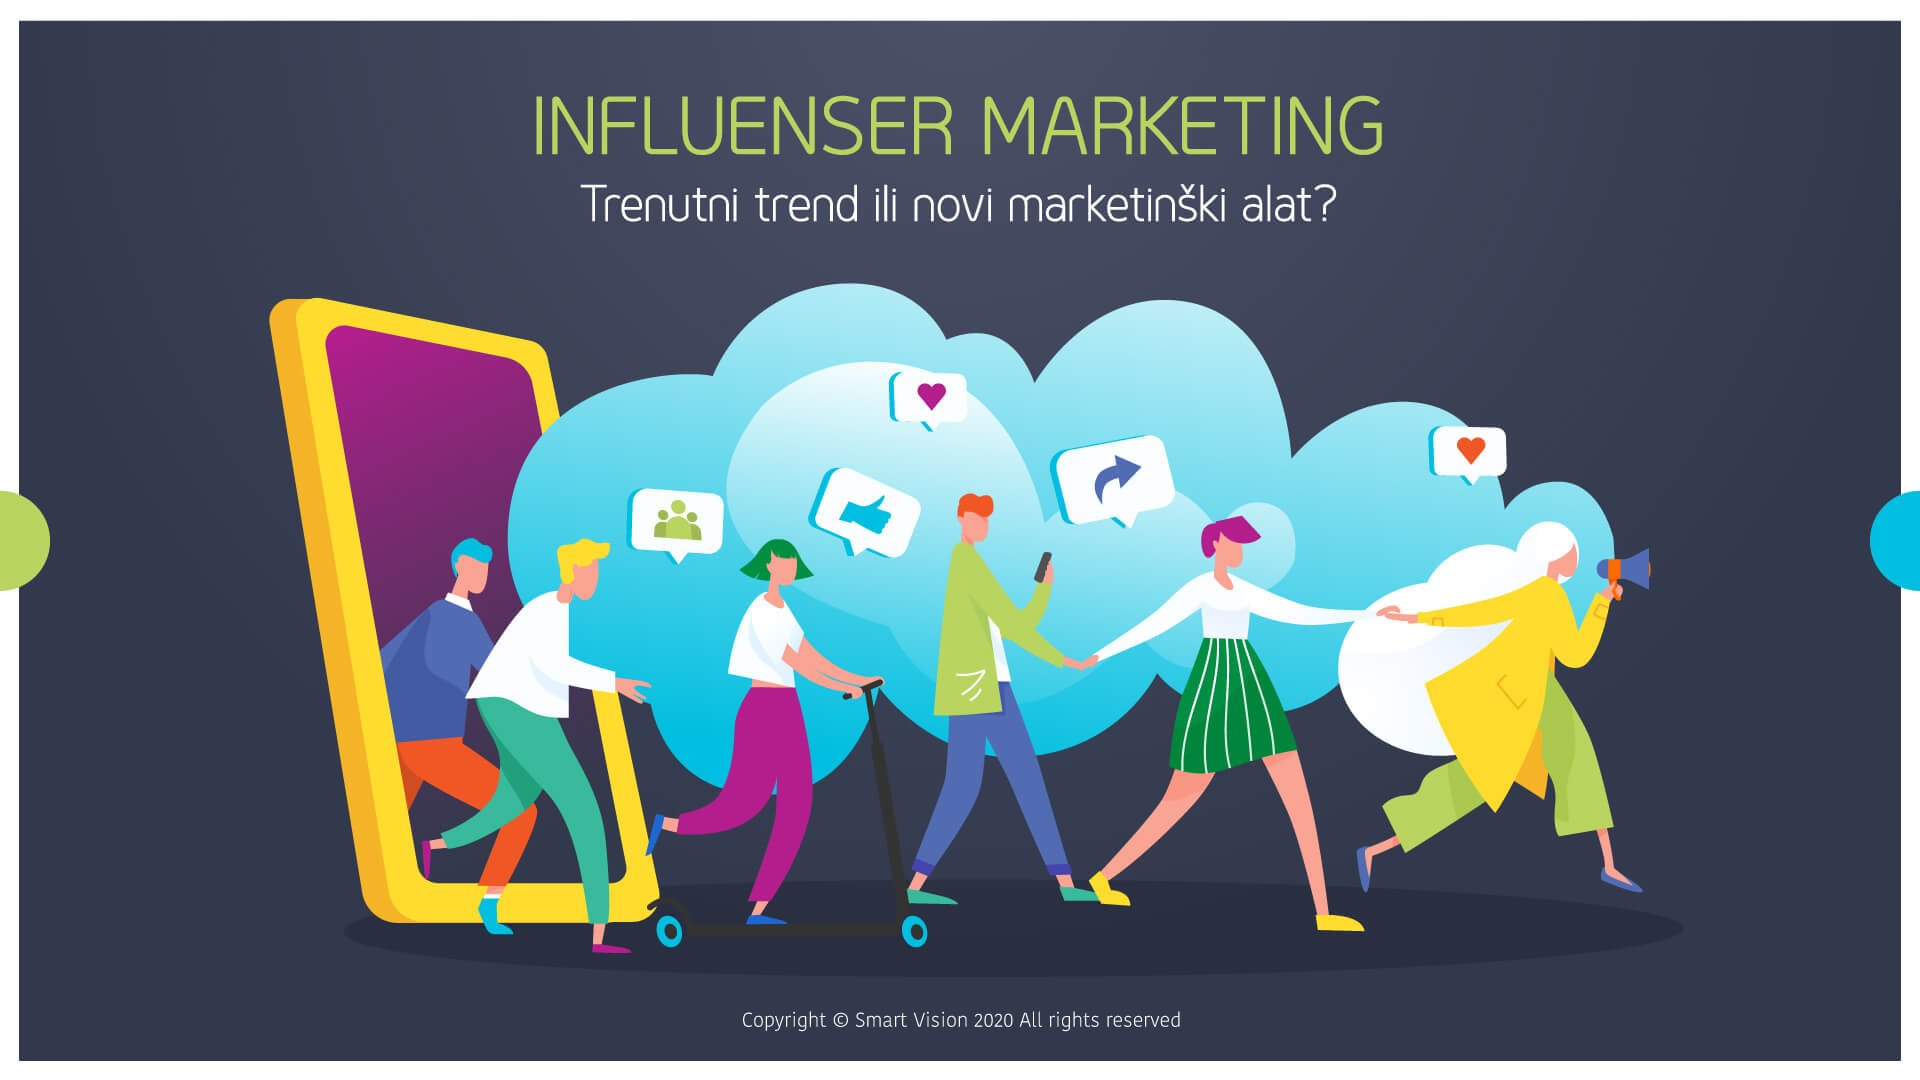 Smart Vision Blog - INFLUENSER MARKETING - Trenutni Trend Ili Novi Marketinški Alat